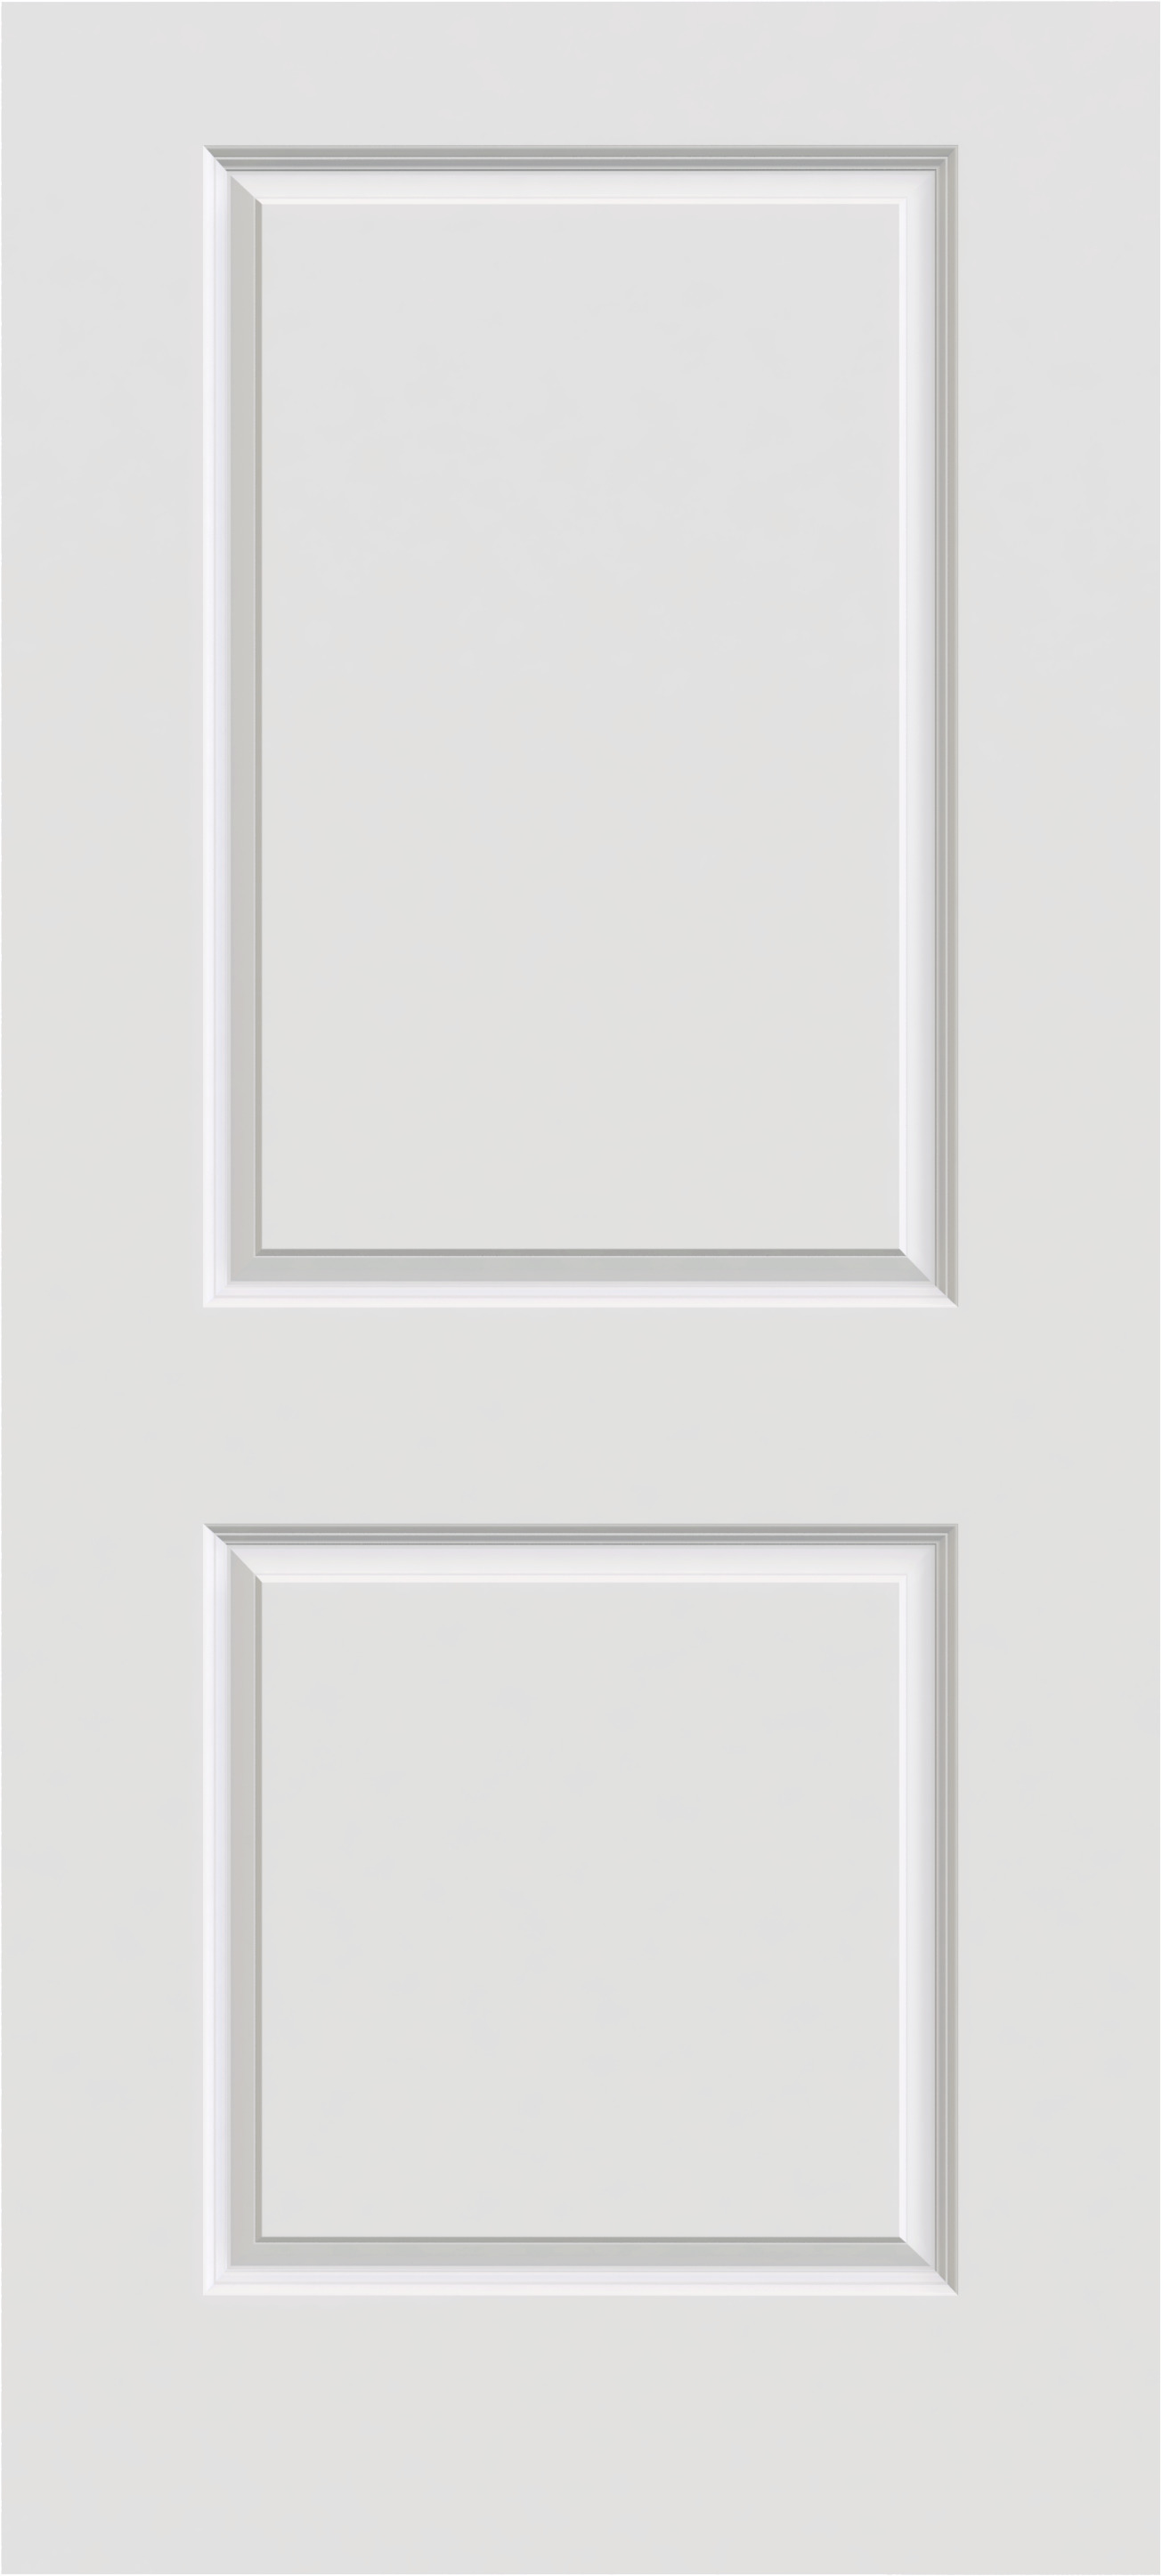 Introducing The New Carrara Jeldwen Interior Door